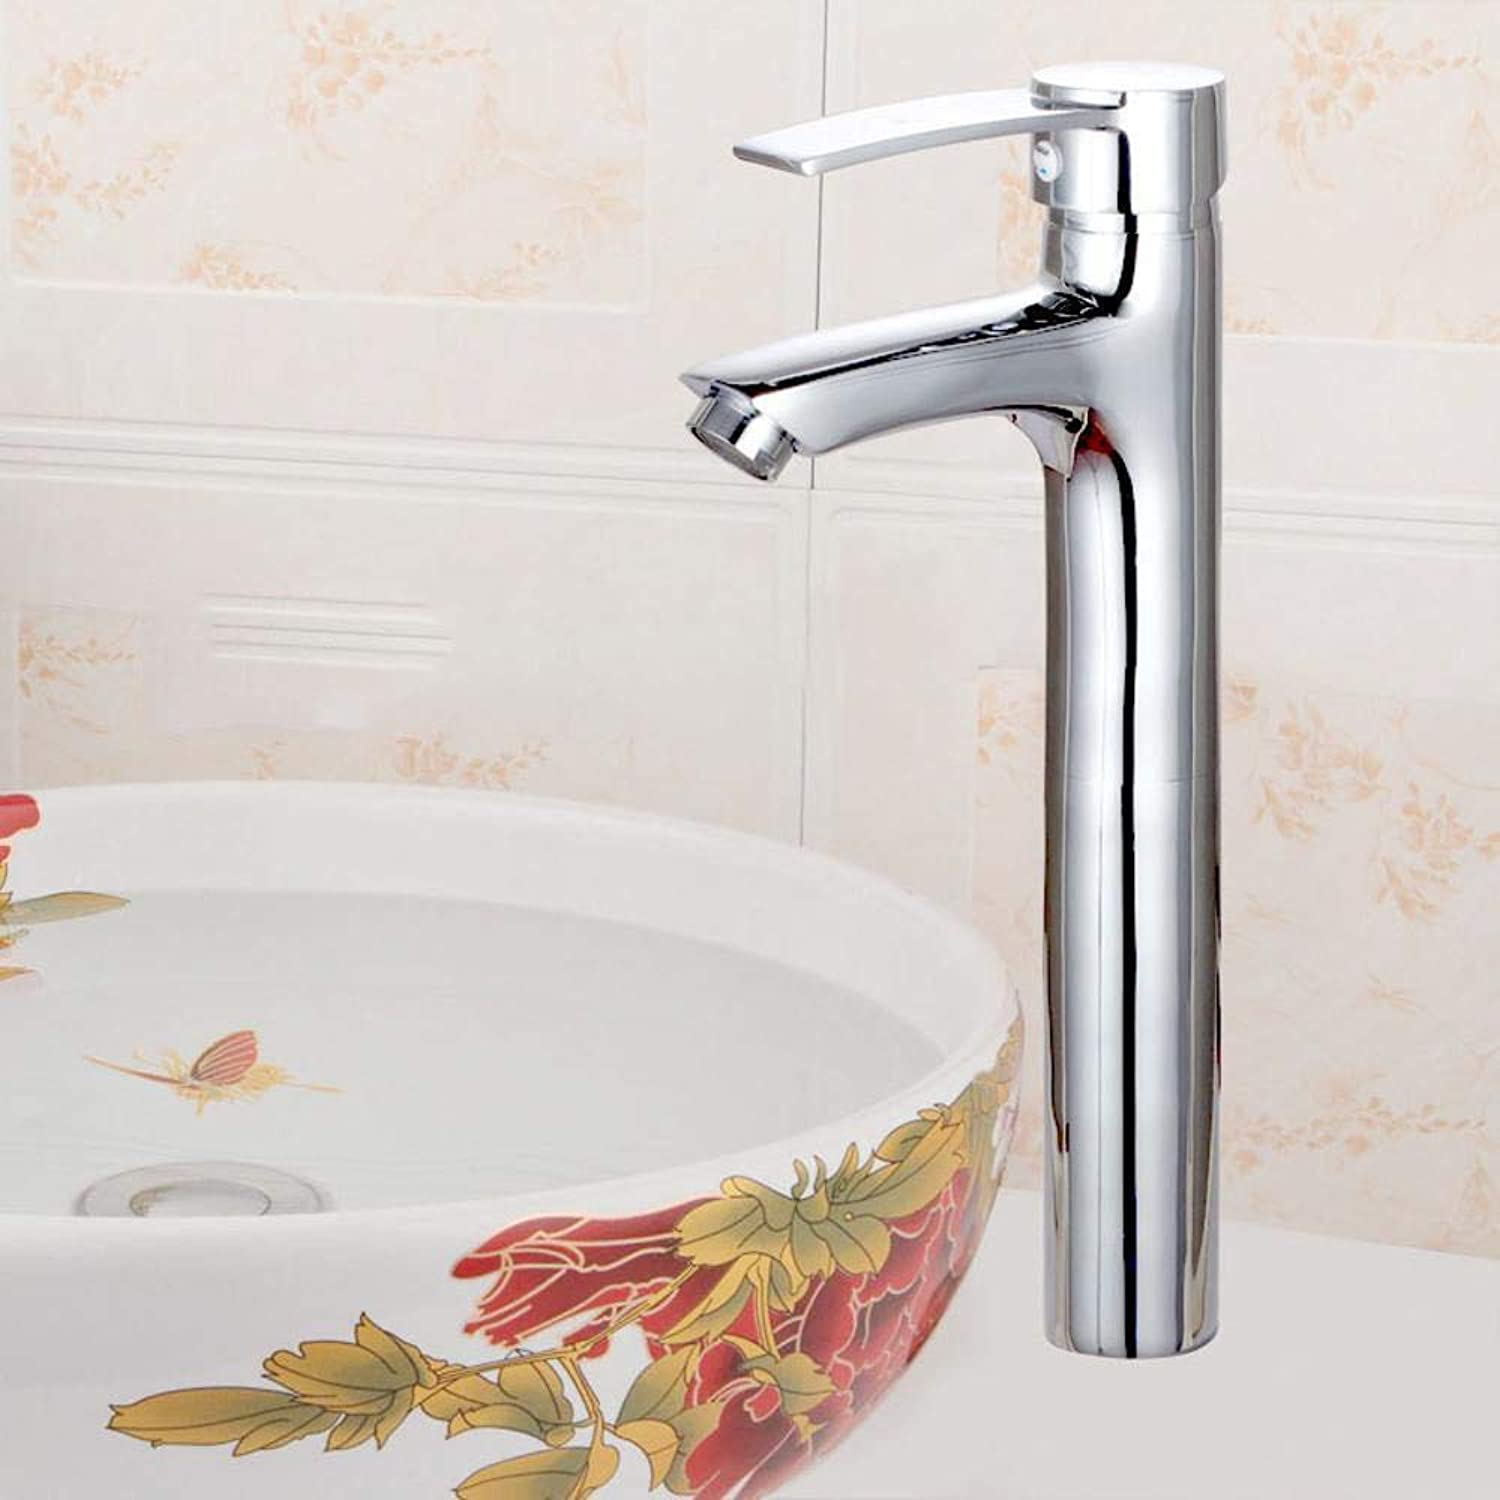 Qpw Table Basin Faucet Heightening hot and Cold Faucet washbasin Faucet